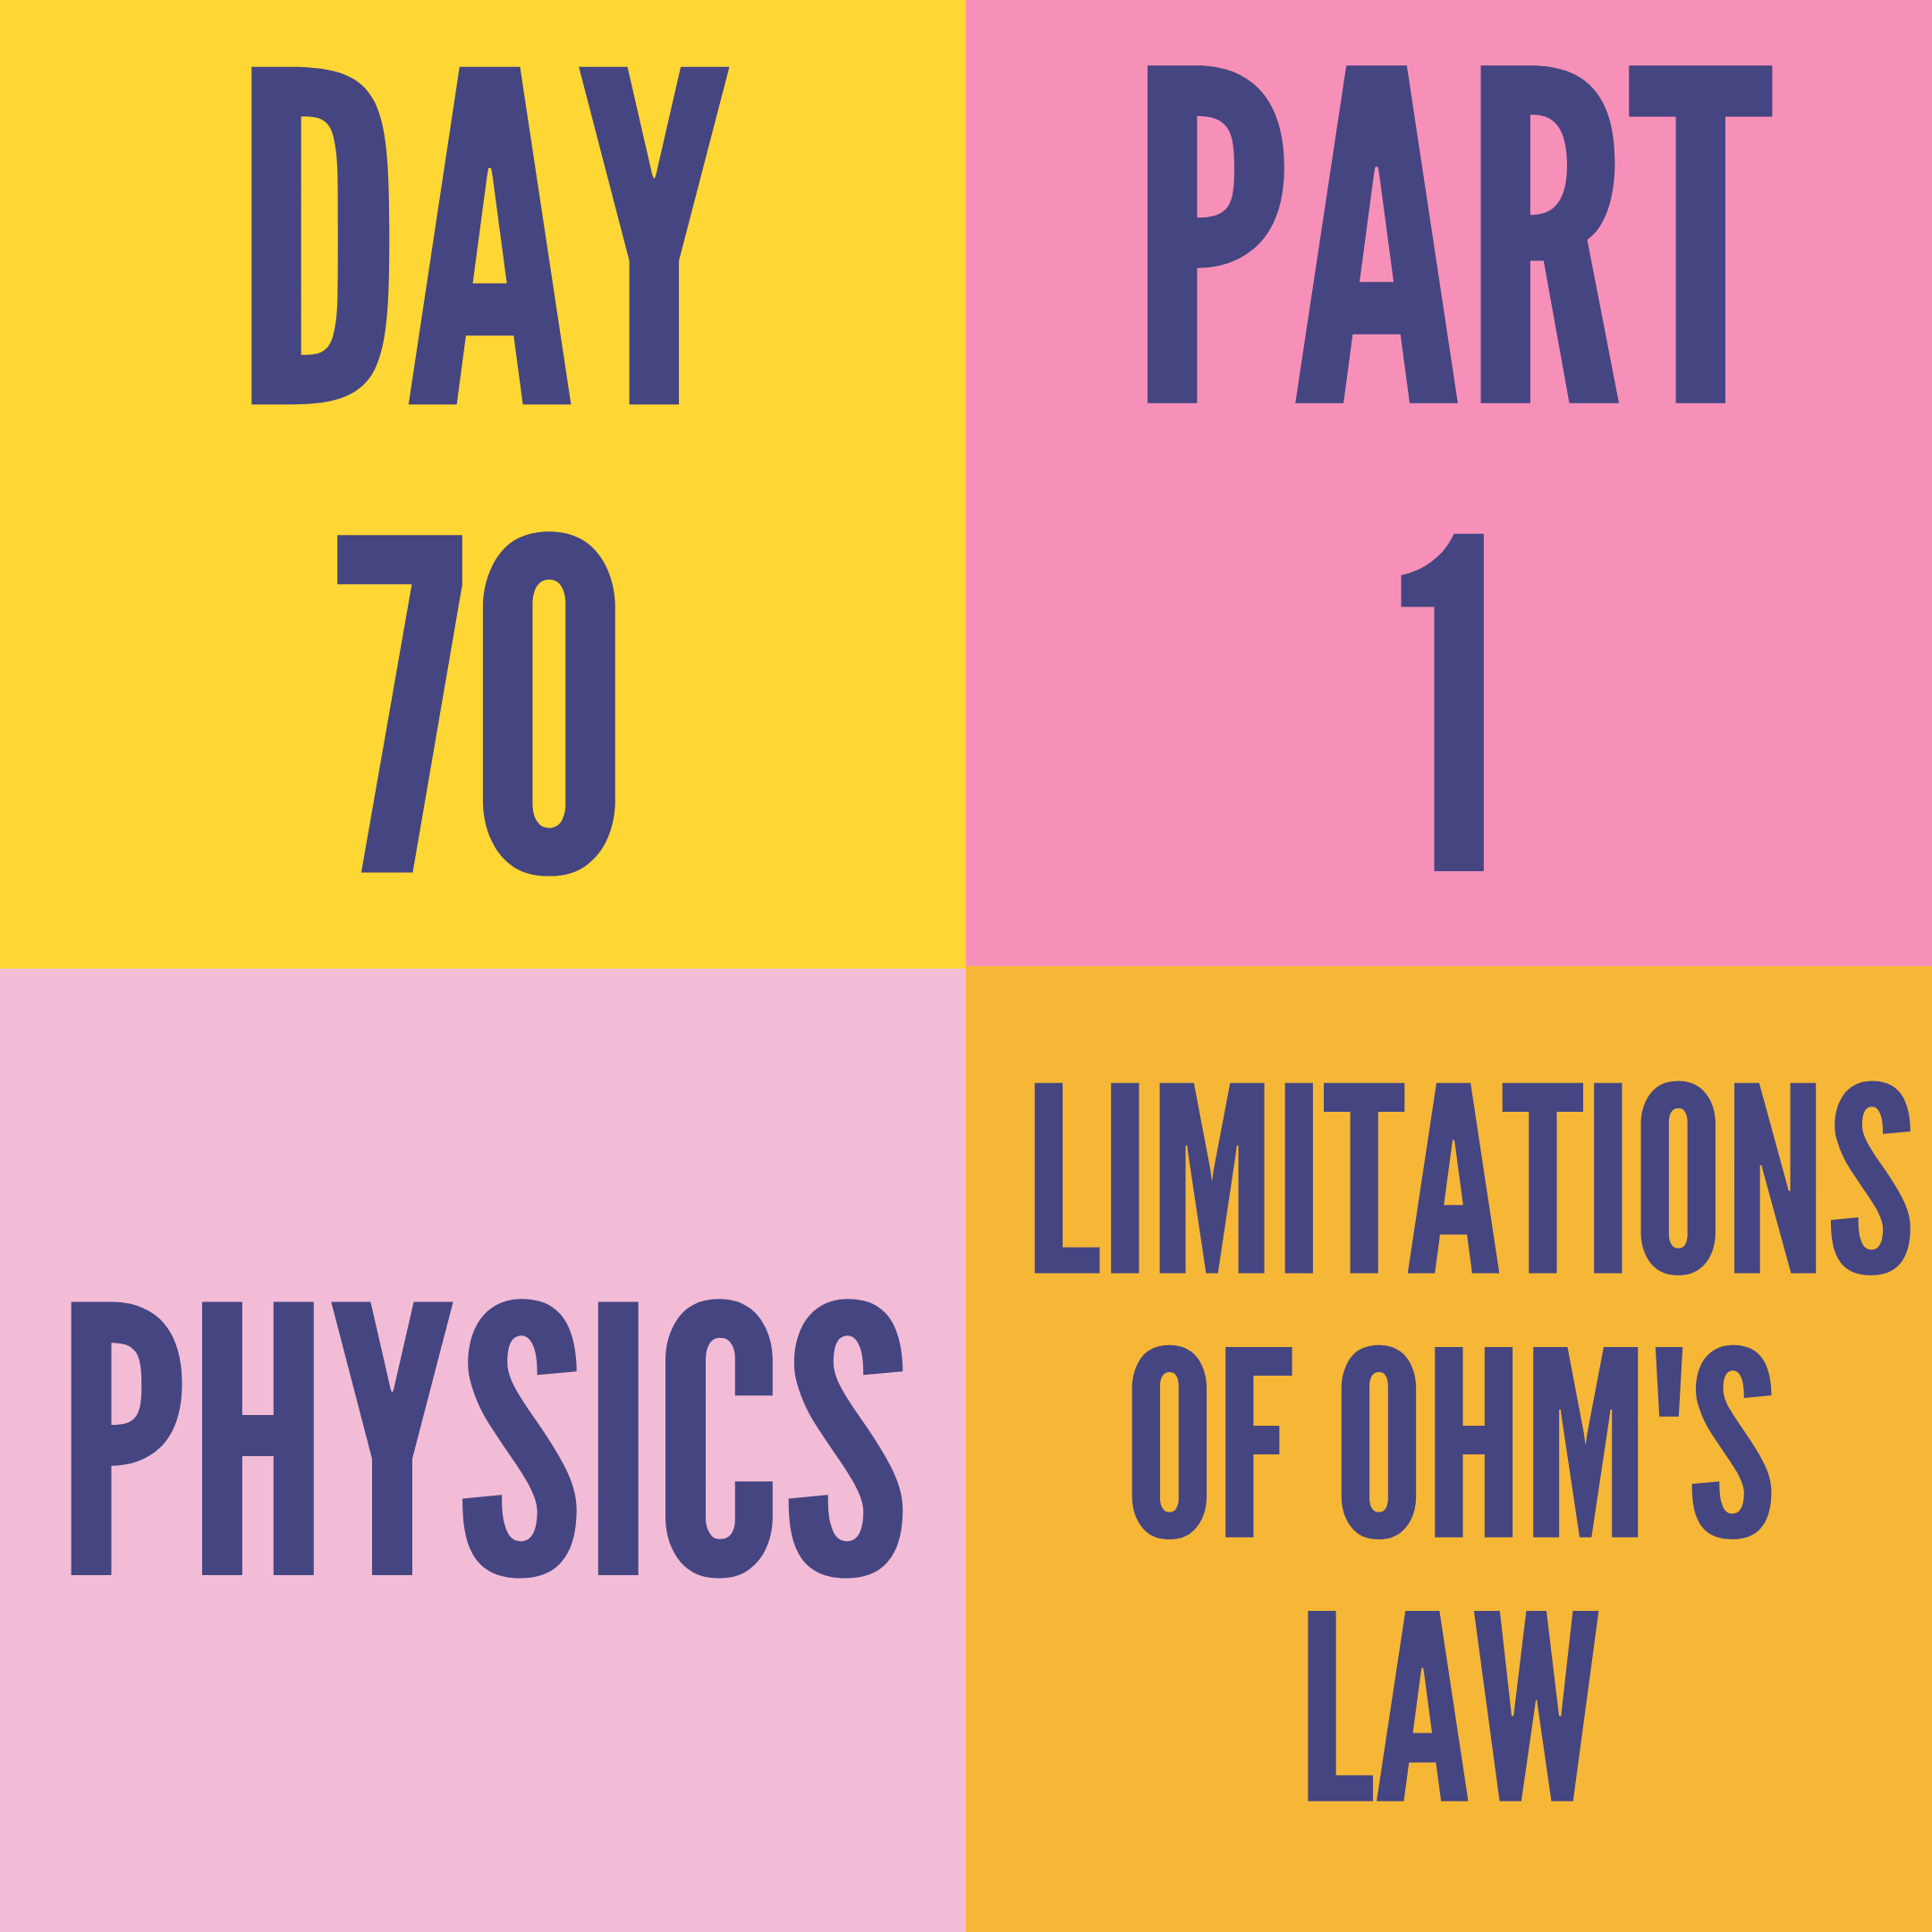 DAY-70 PART-1  LIMITATIONS OF OHM'S LAW